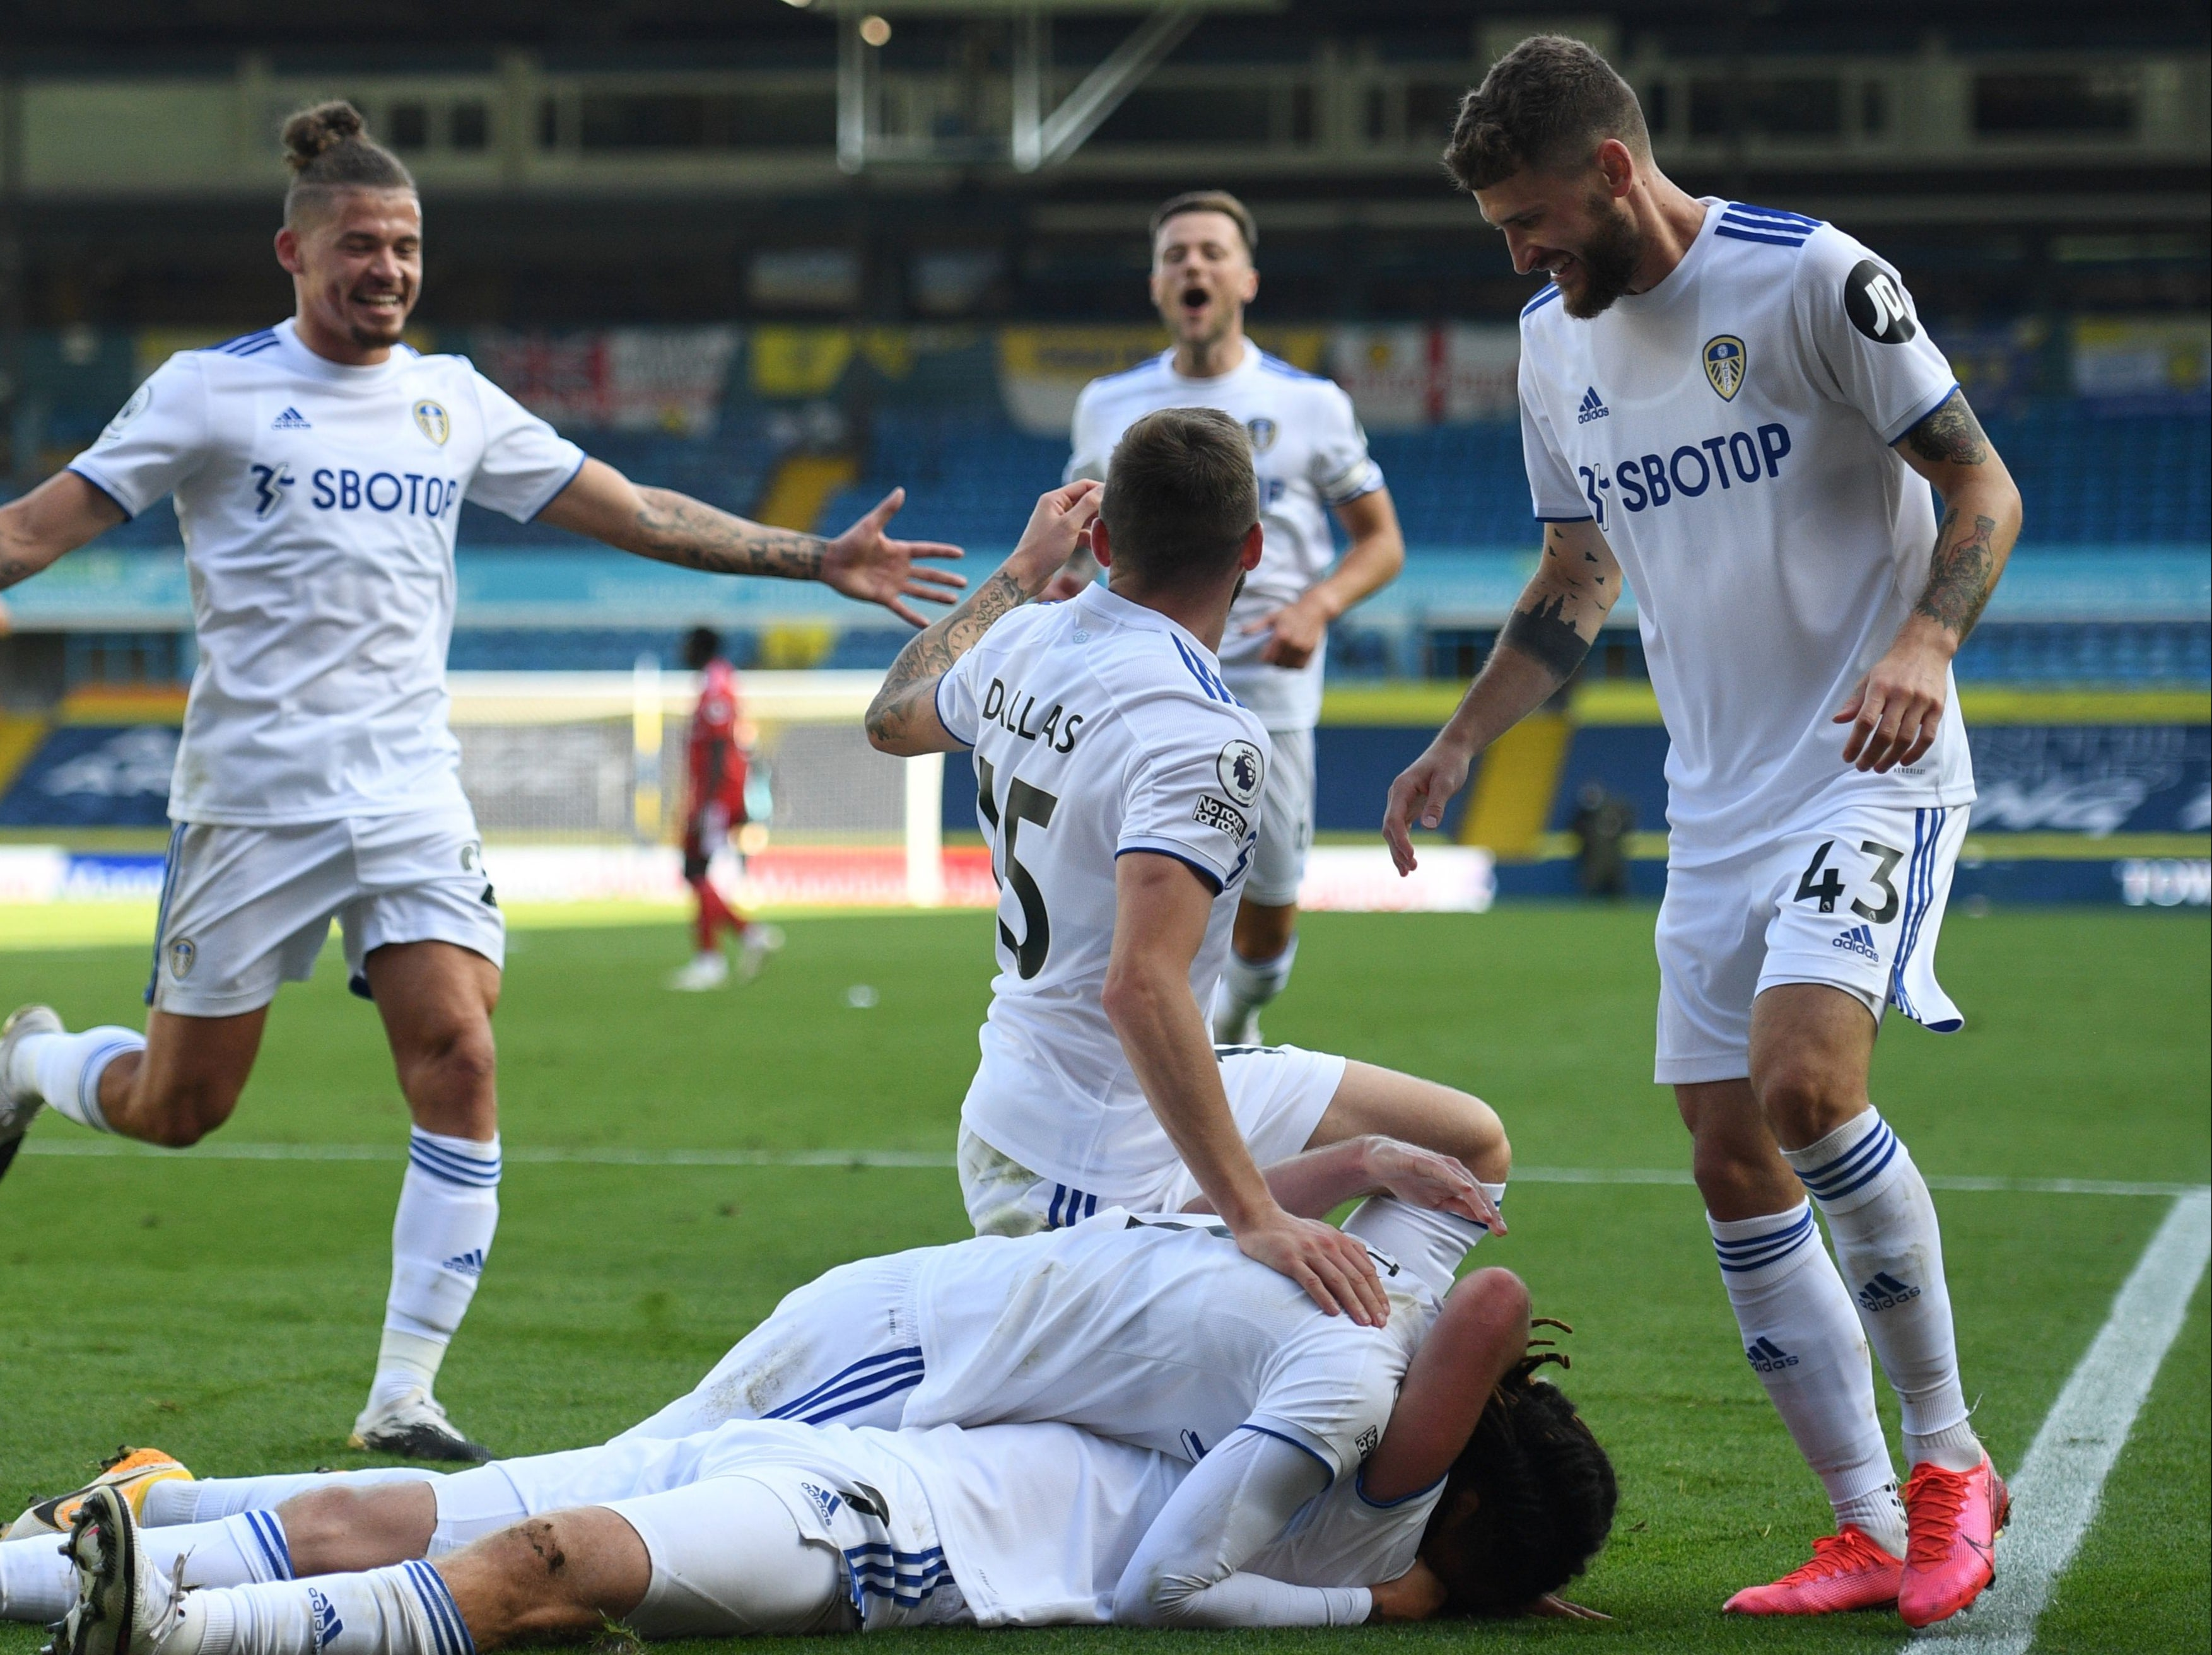 Leeds vs Fulham result: Helder Costa and Patrick Bamford star as hosts  emerge victorious from thriller at Elland Road | The Independent